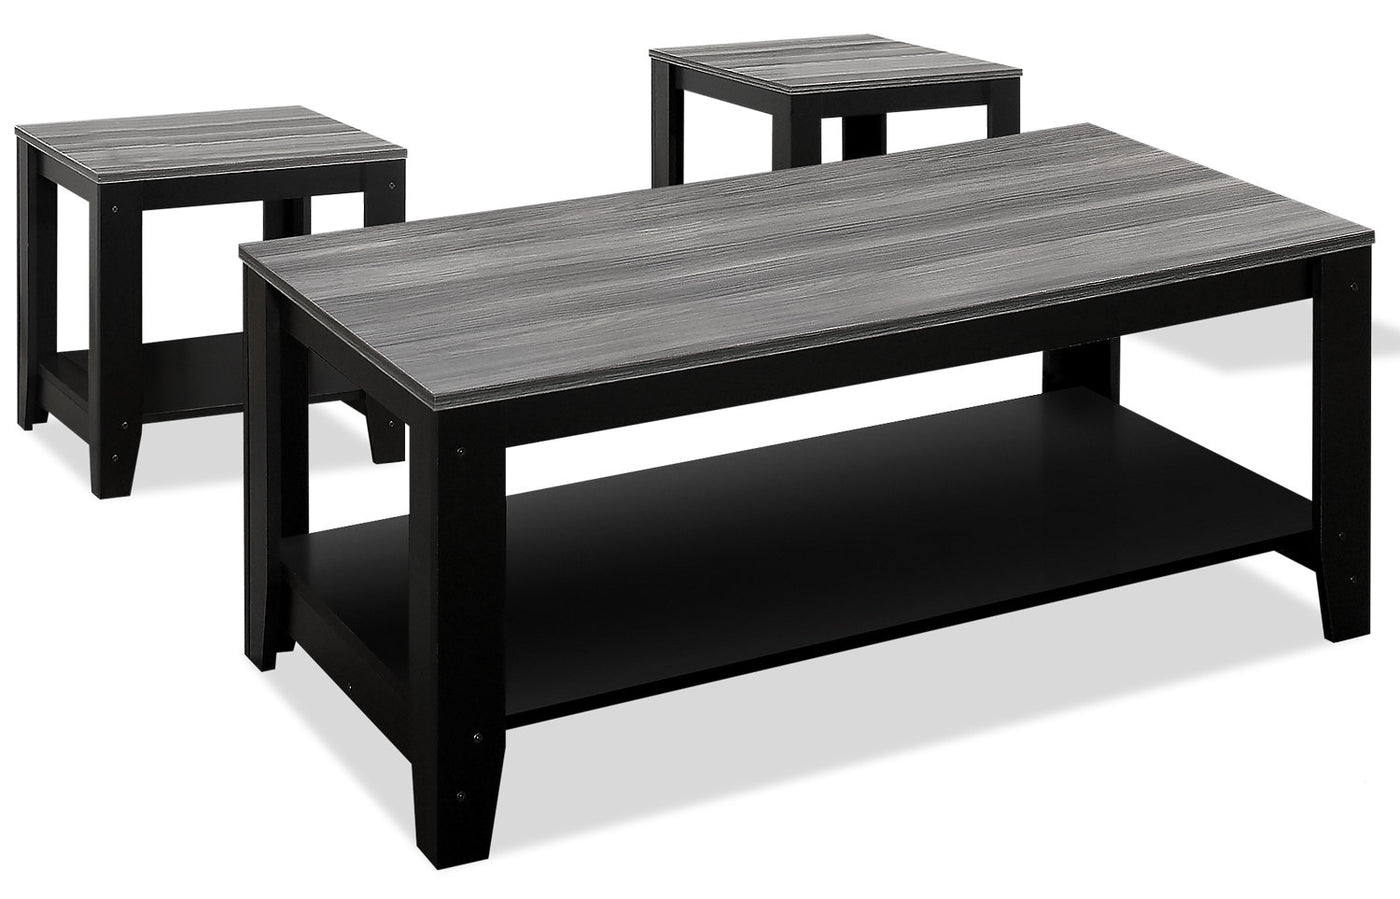 - Rory 3-Piece Coffee And Two End Tables Package - Grey And Black